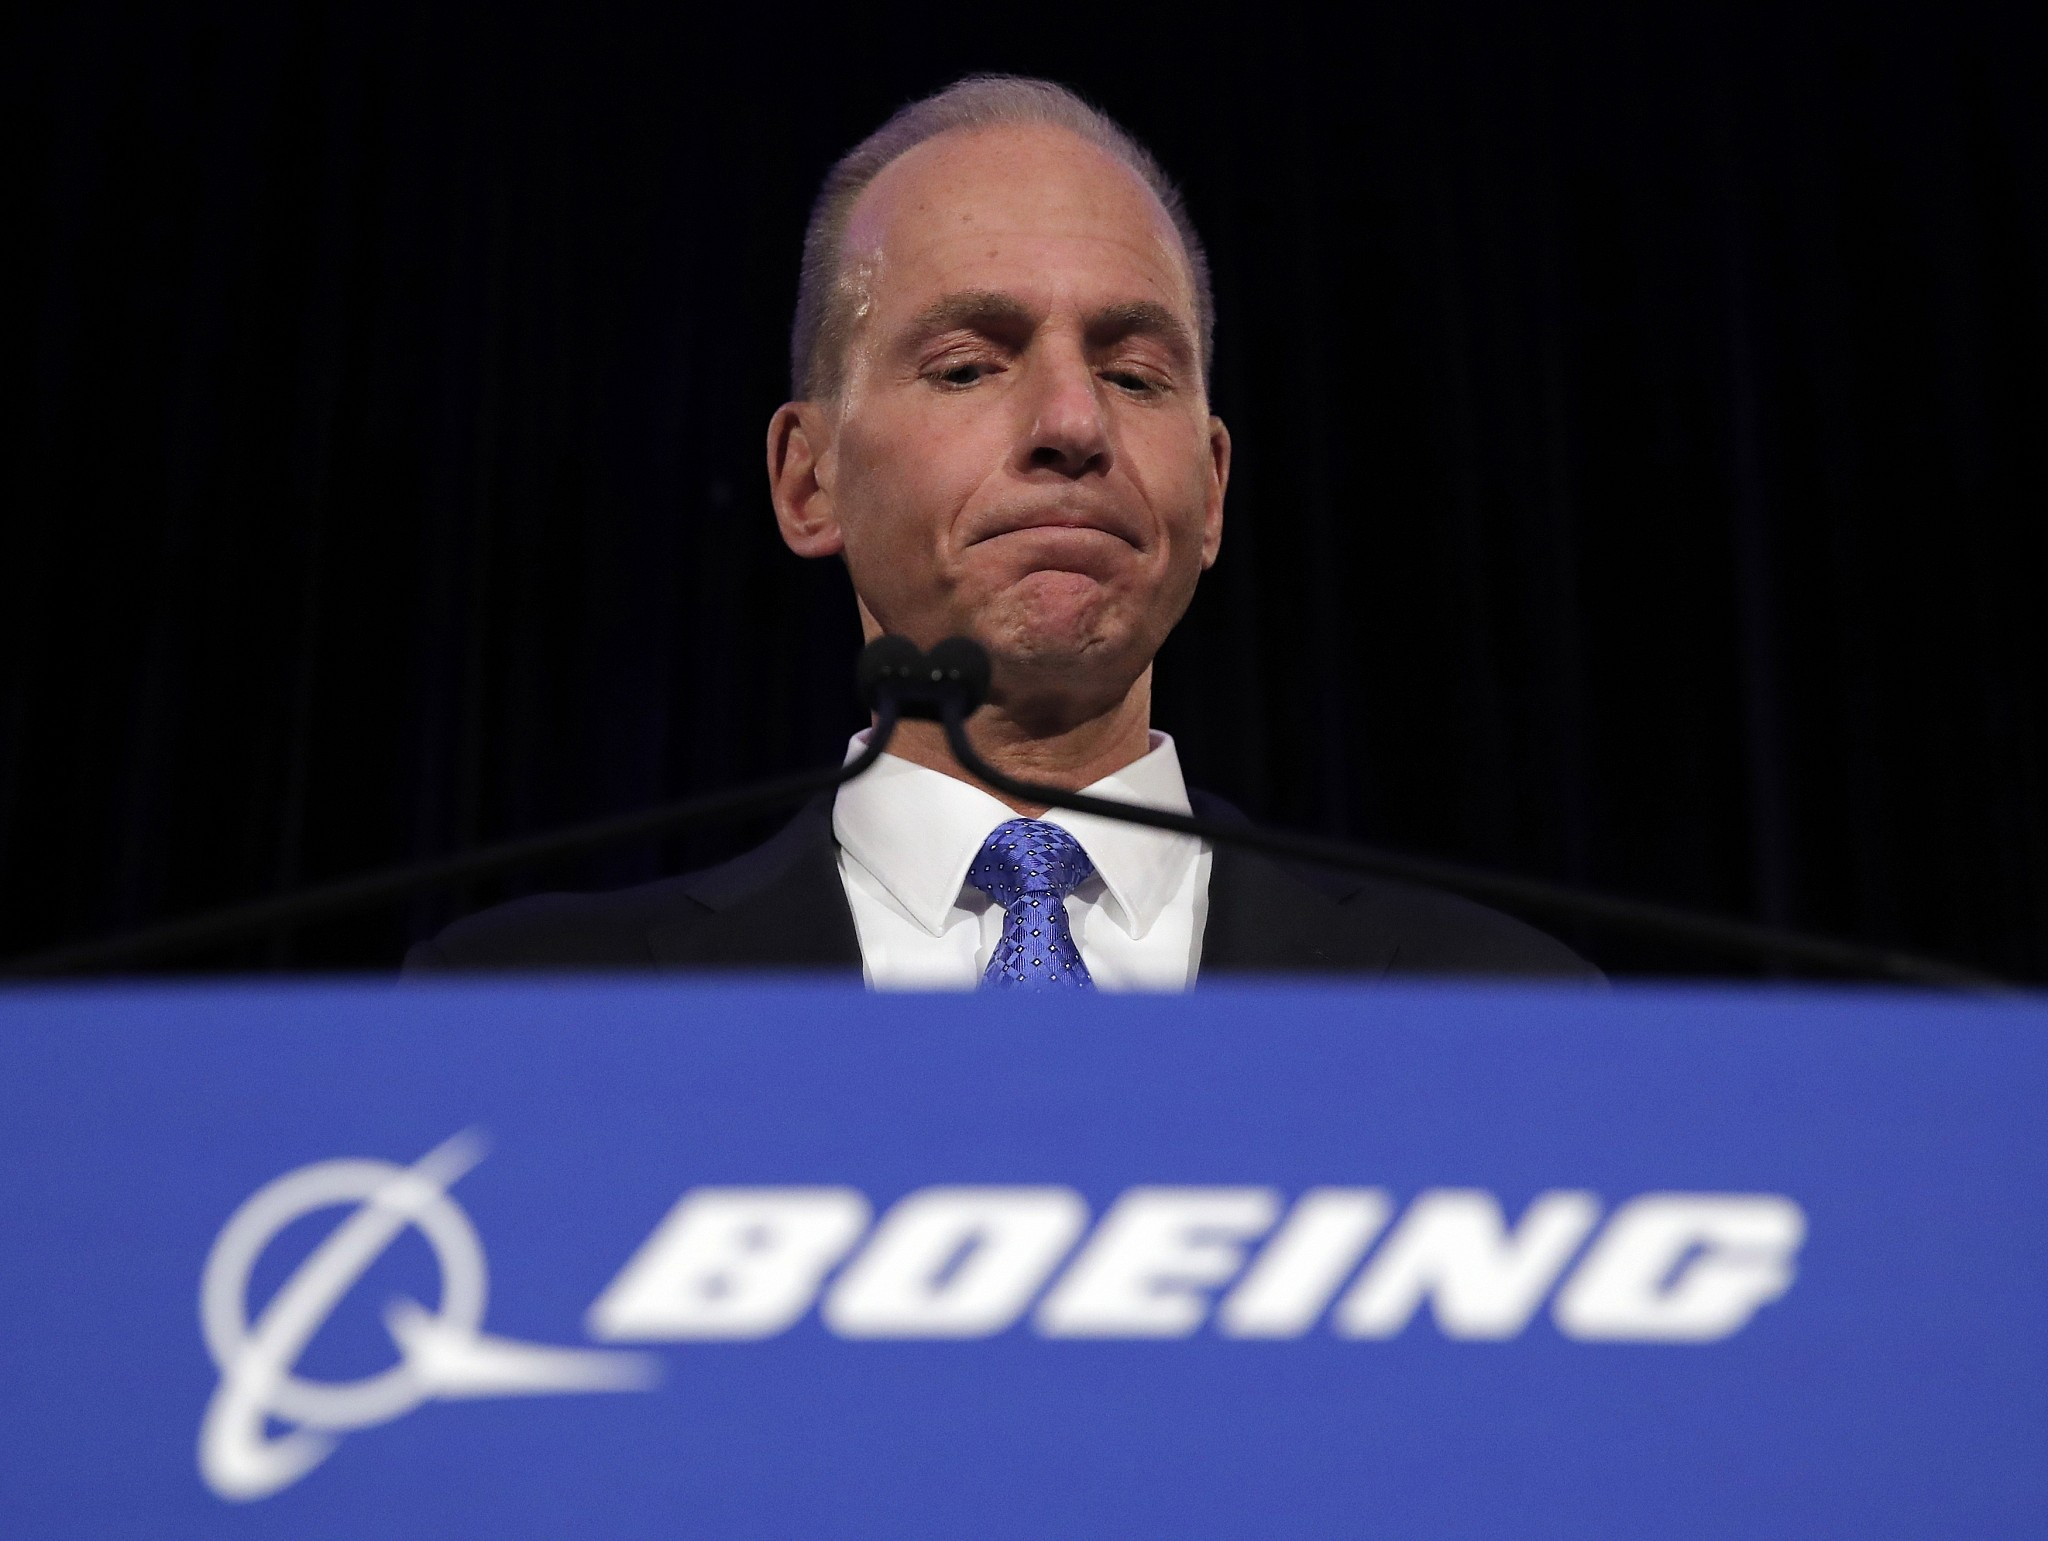 Boeing apologizes for MAX 737 crashes, promises to learn lessons